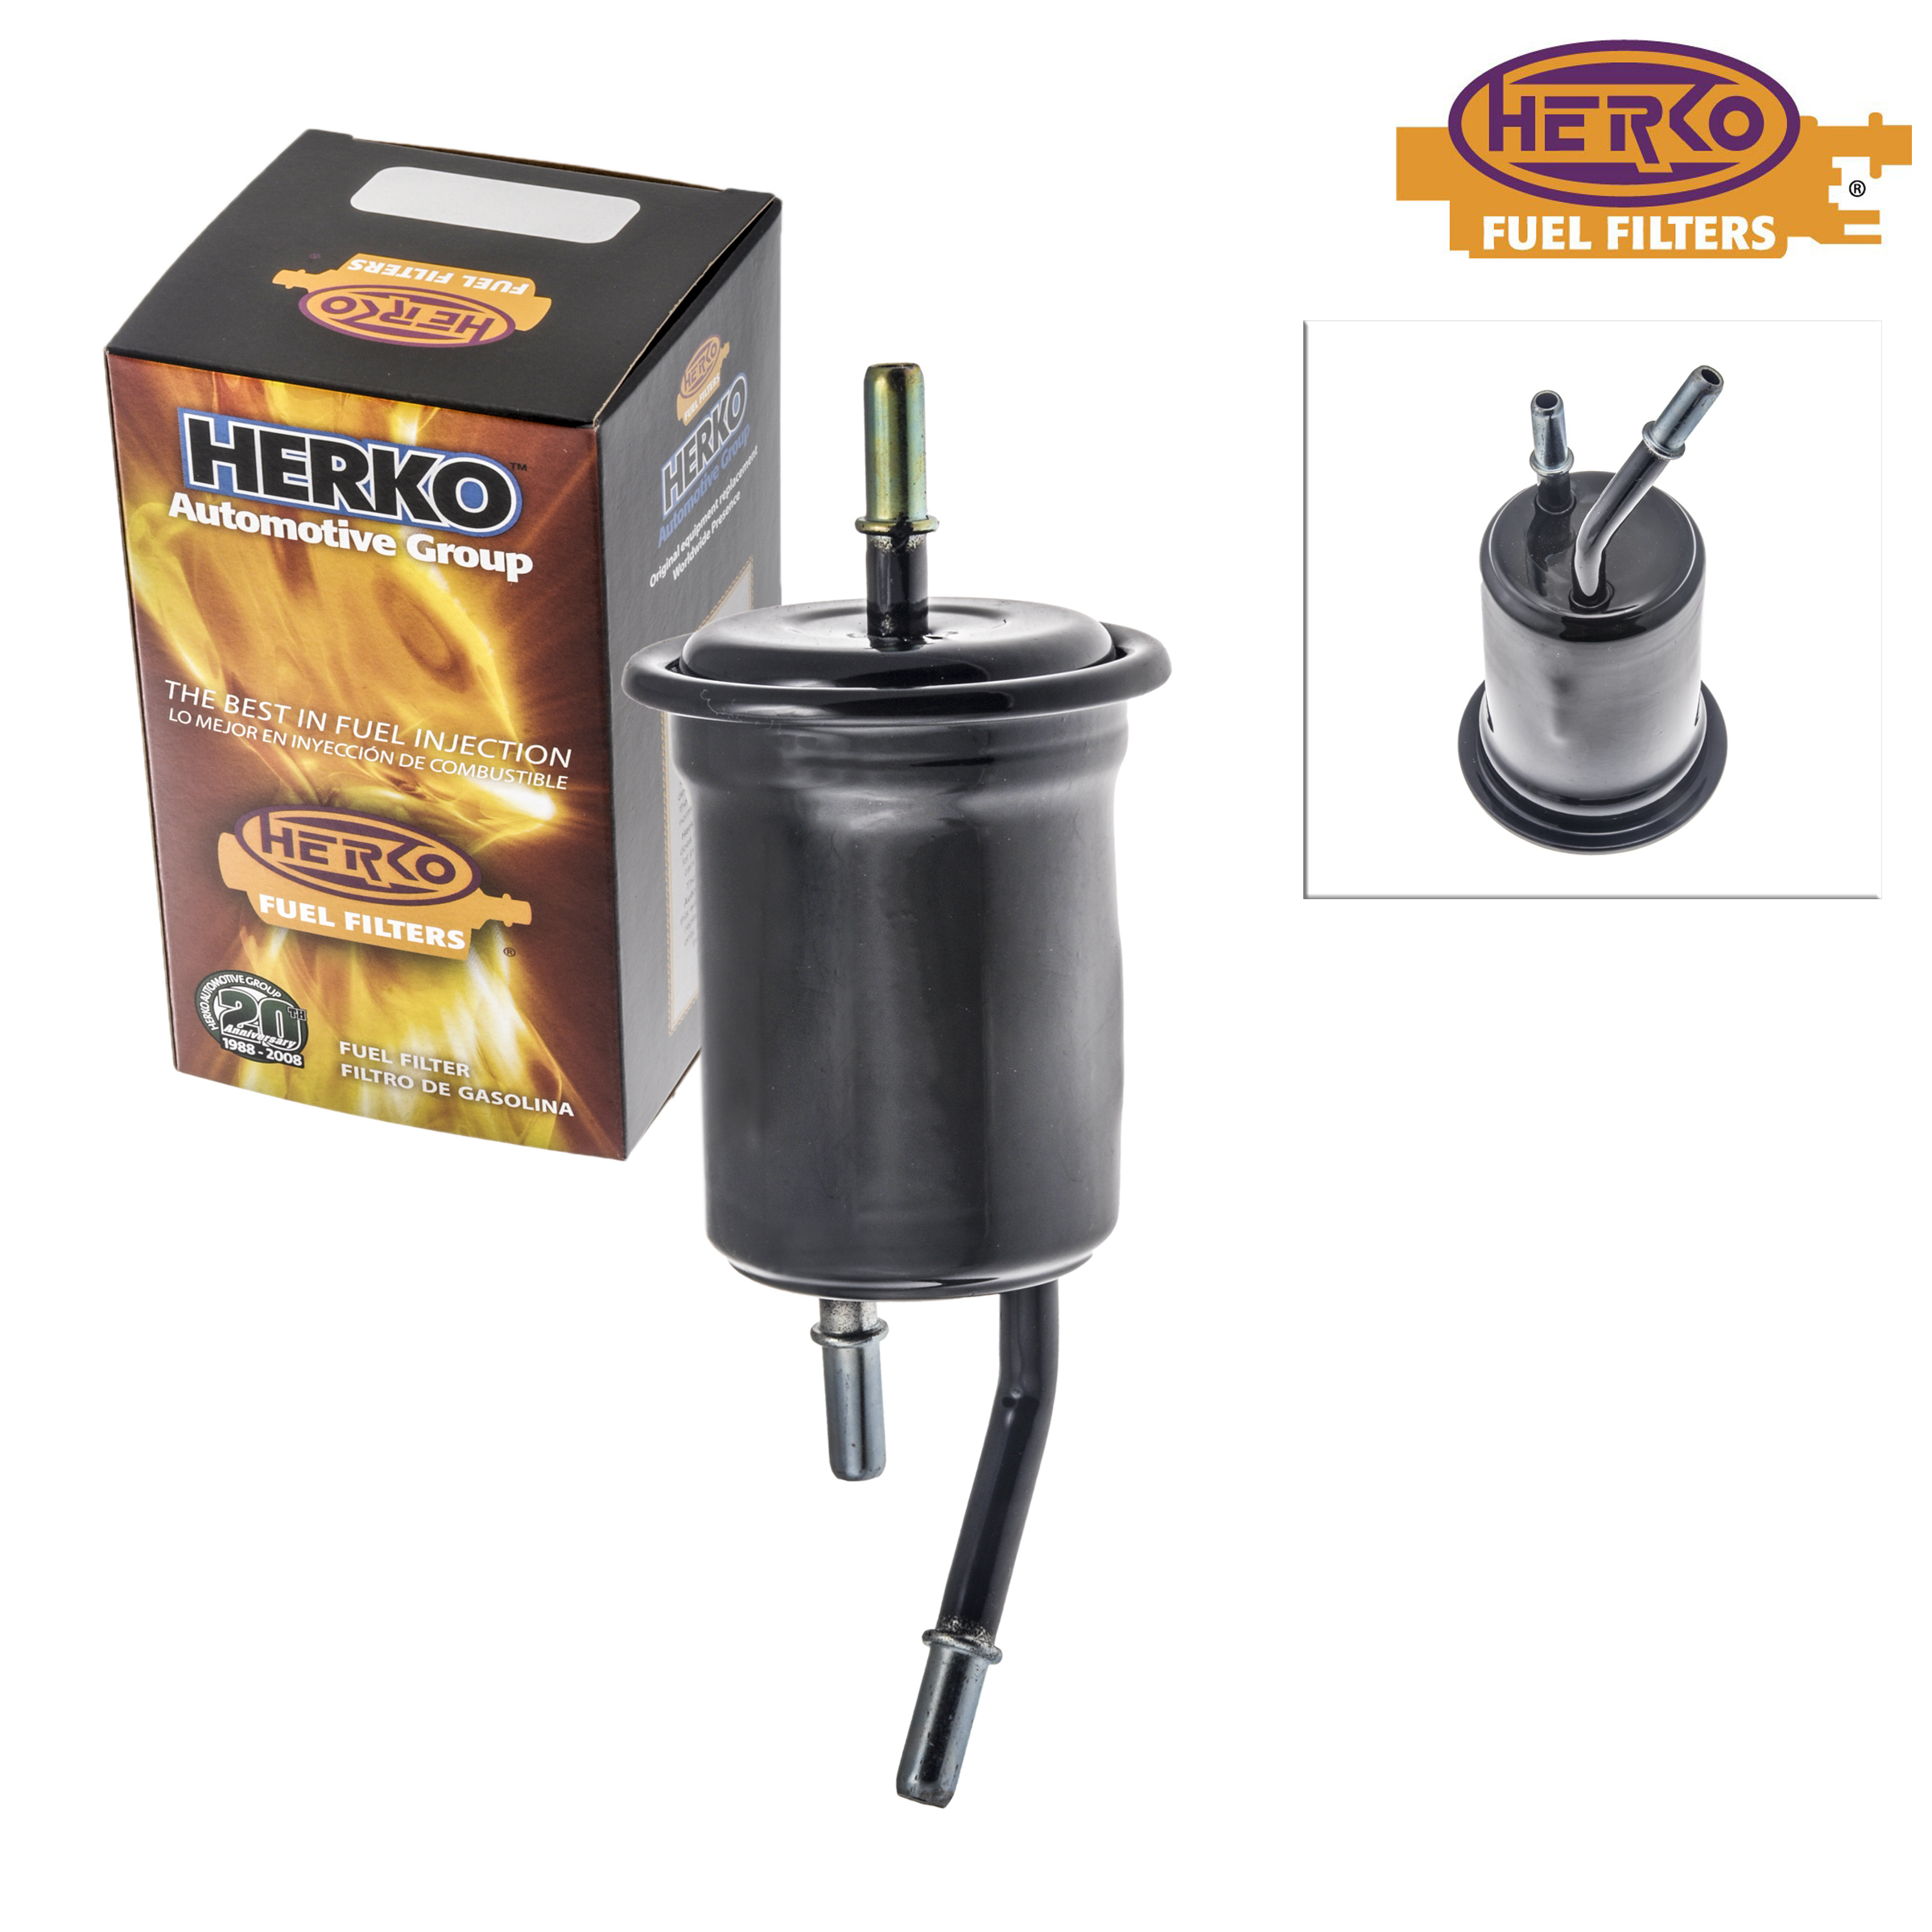 [SCHEMATICS_43NM]  Herko Fuel Filter FKI05 For Kia Rio 1.5L-L4 1.6L-L4 2001-2005 | eBay | 2004 Kia Rio Fuel Filter |  | eBay